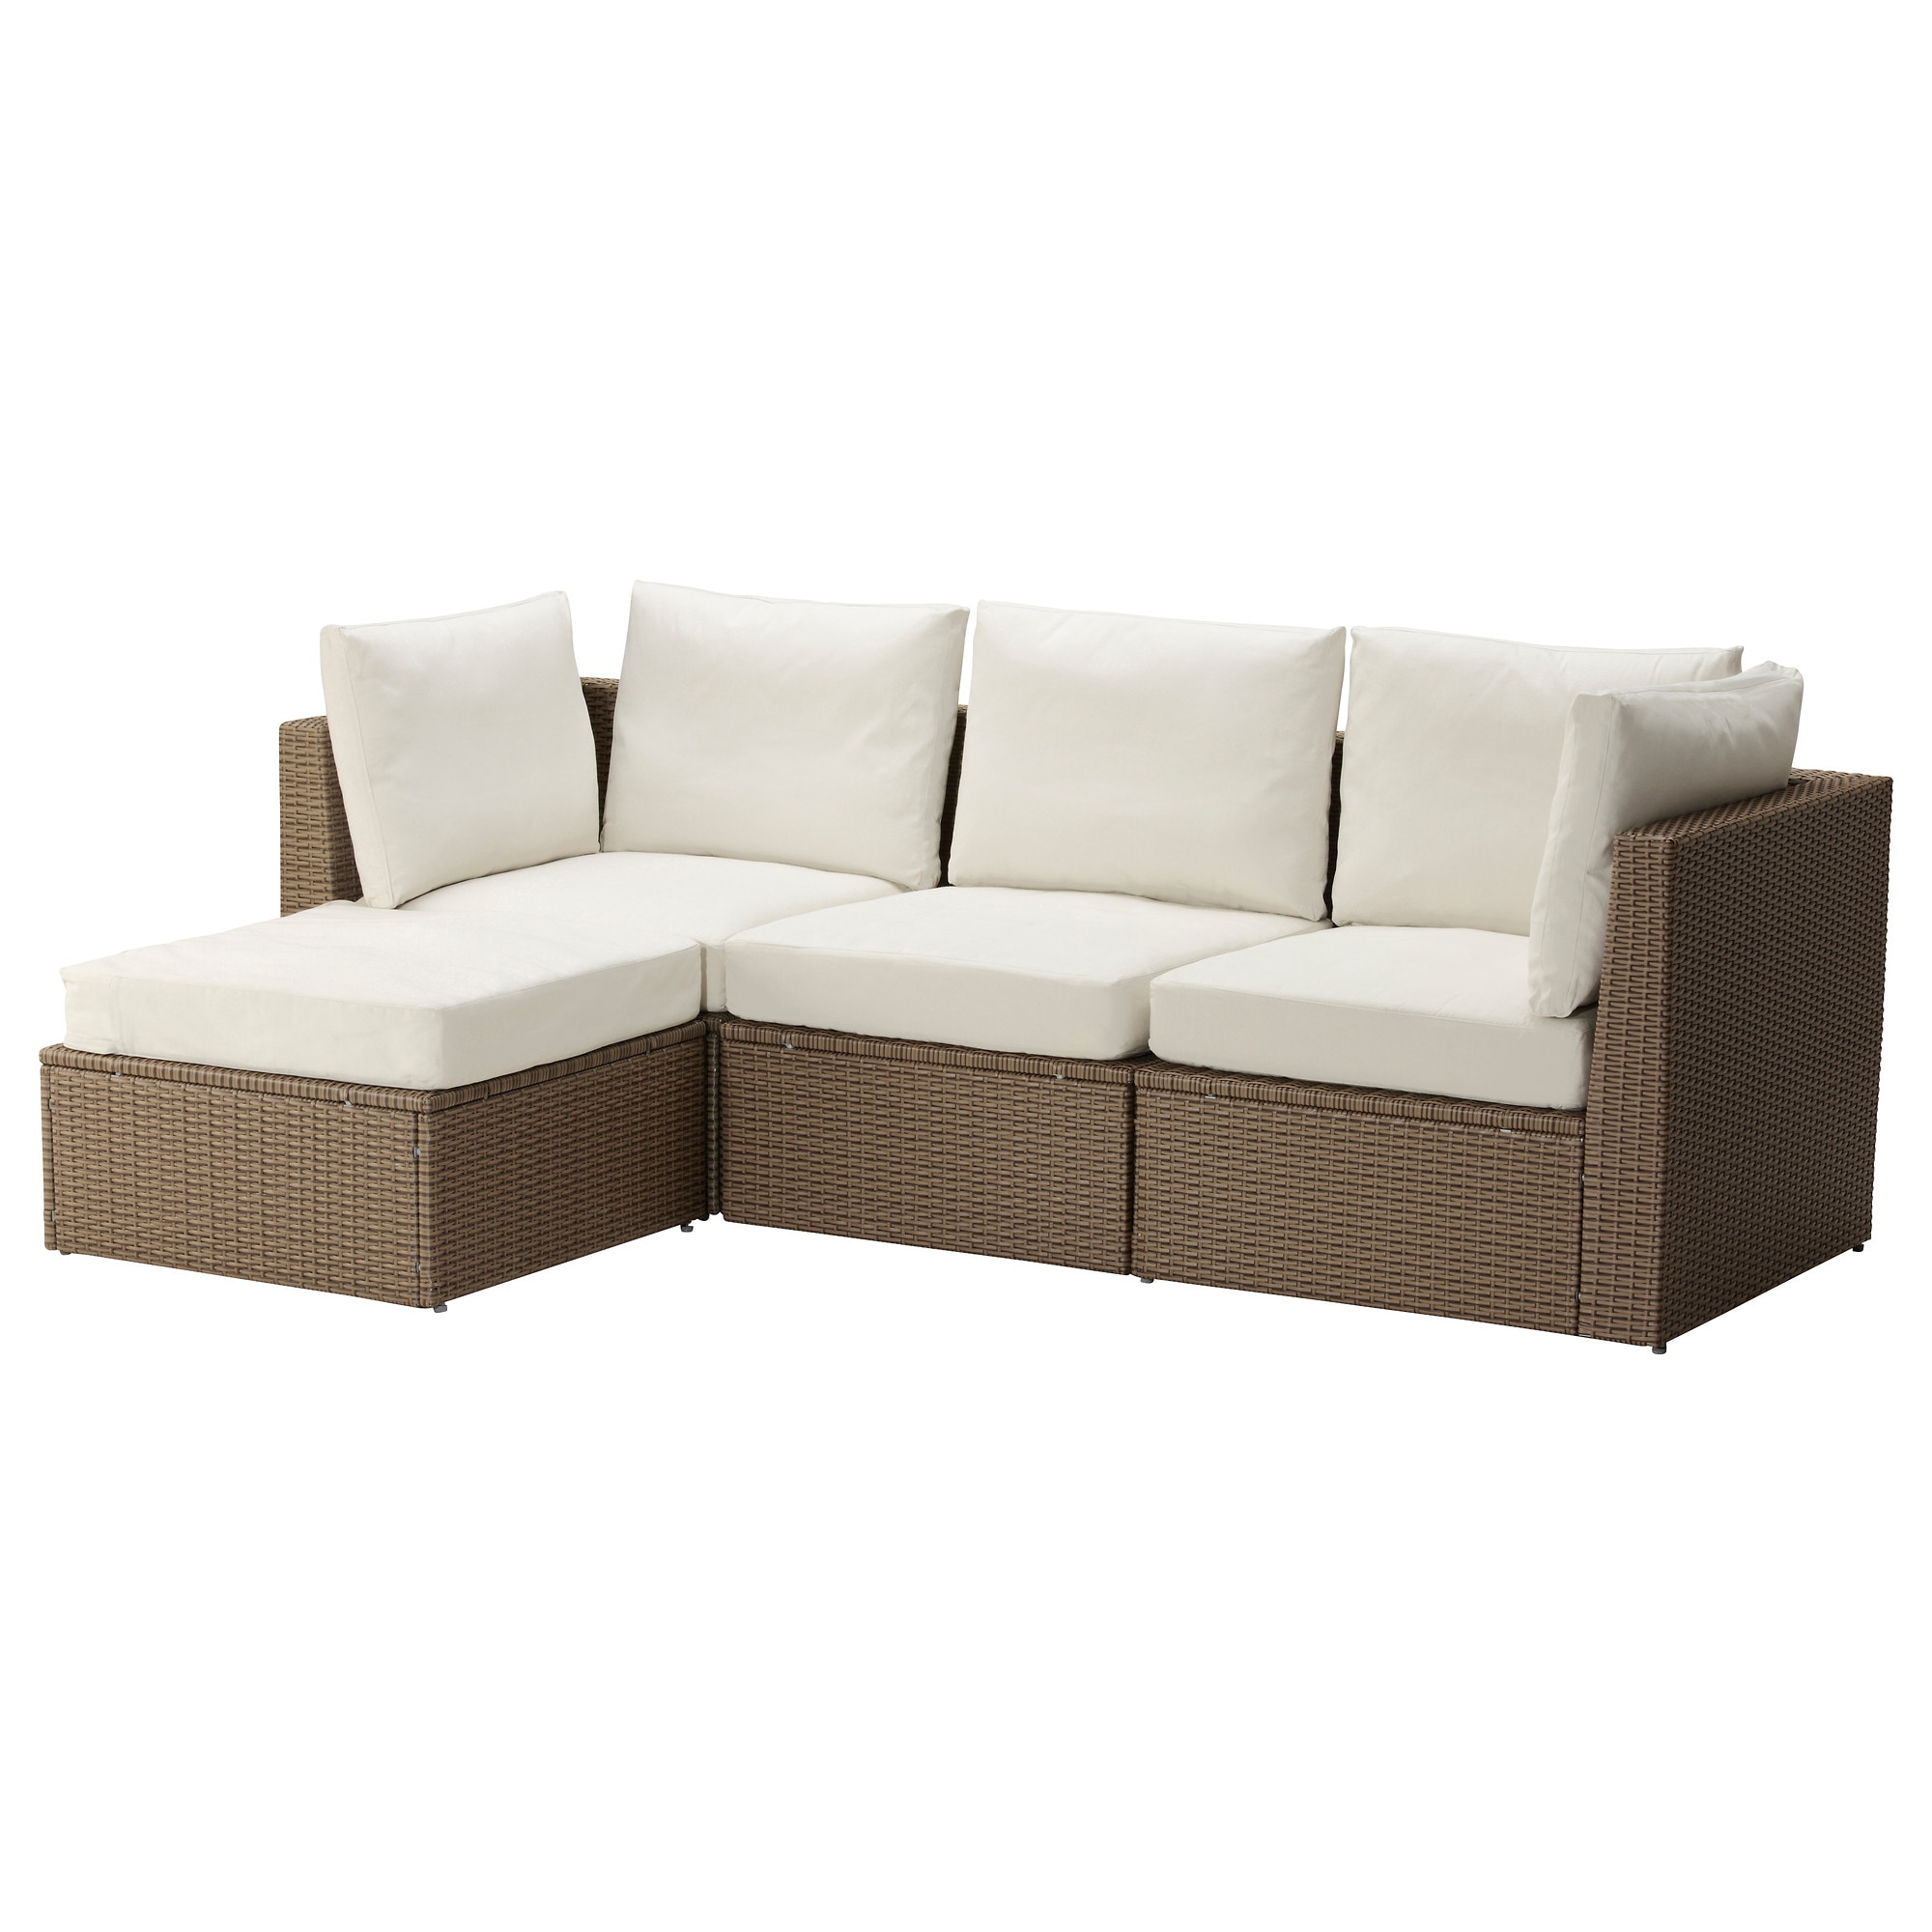 Couch Depth sofa combinations - lounging & relaxing furniture - ikea